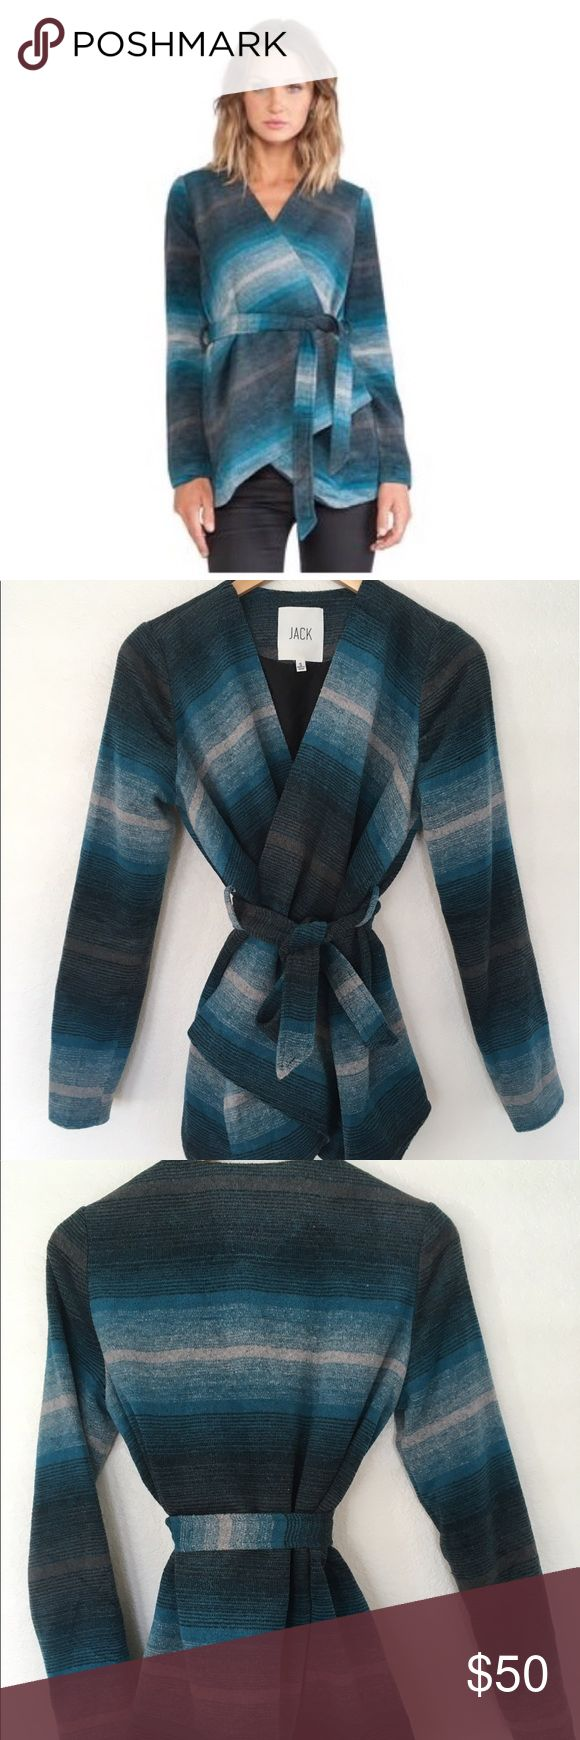 """JACK Belted Ombré Stripe Jacket Gorgeous blue/real ombre pattern! Belted jacket with soft exterior and a lining similar to what you'd find with a blazer. Works well as a sweater in colder weather or a light jacket in warmer weather. NWT, excellent condition, no issues. Bust is 29.5"""", length is 29"""" in front, 27"""" in back. Jack by BB Dakota Jackets & Coats Blazers"""